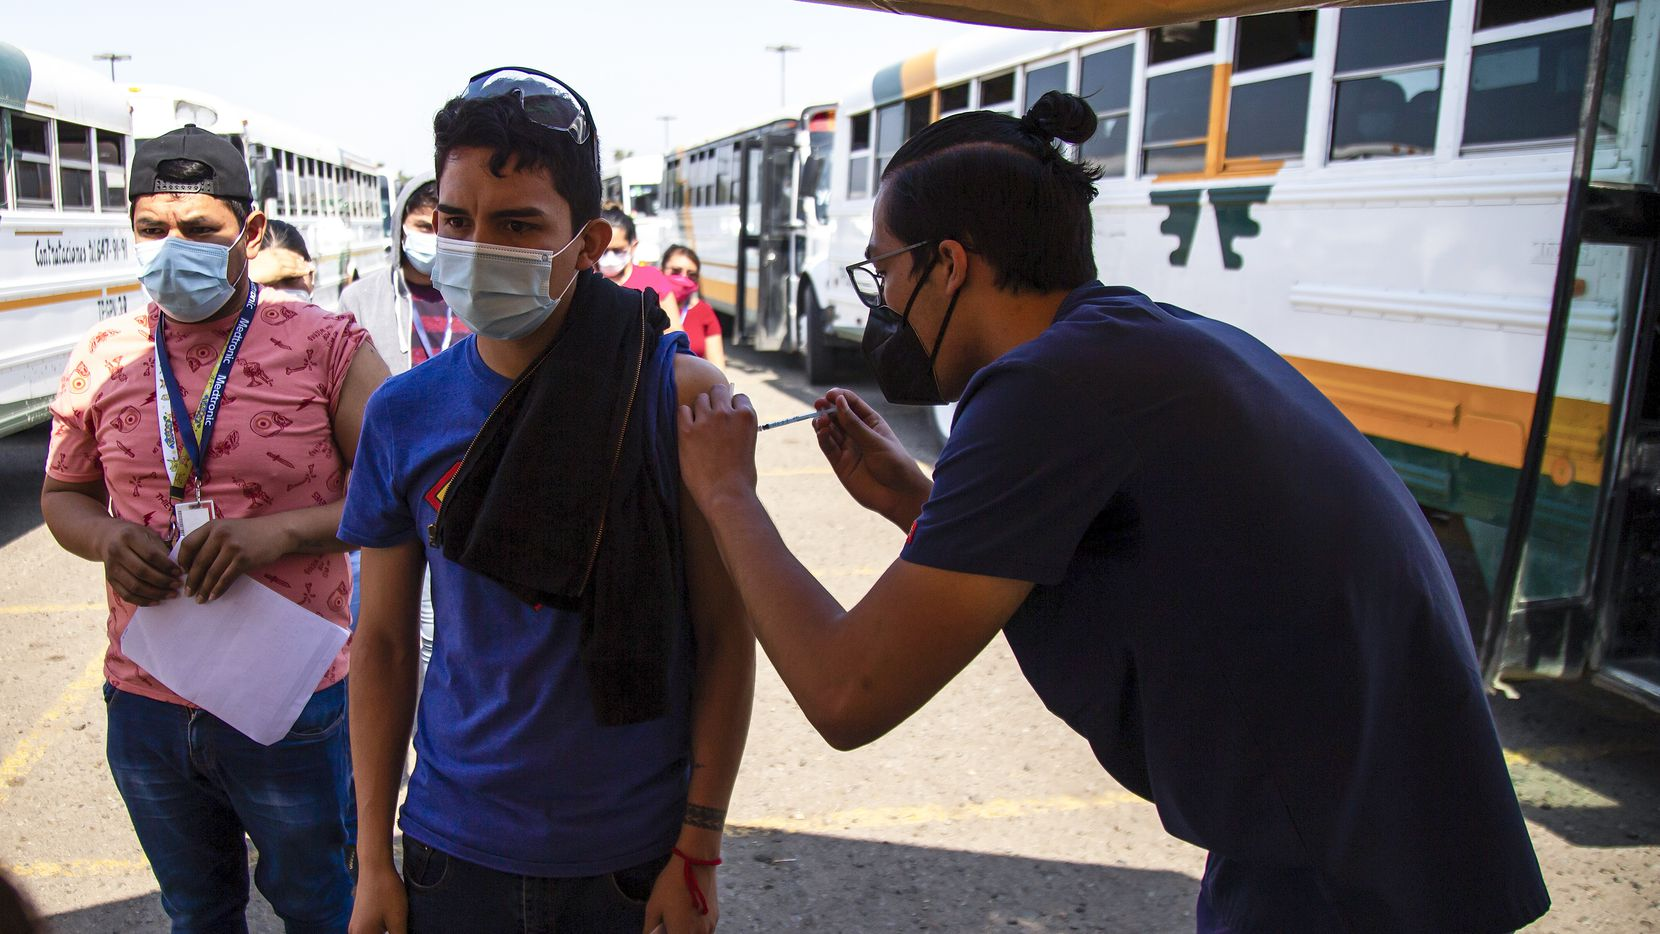 The city of Tijuana began a mass vaccination campaign on June 17 using Johnson & Johnson vaccines donated by the U.S. government, with a view with a view to reopening the land border. To speed up vaccination, companies transport employees who want to be vaccinated by truck and take them to receive the single dose against COVID-19.